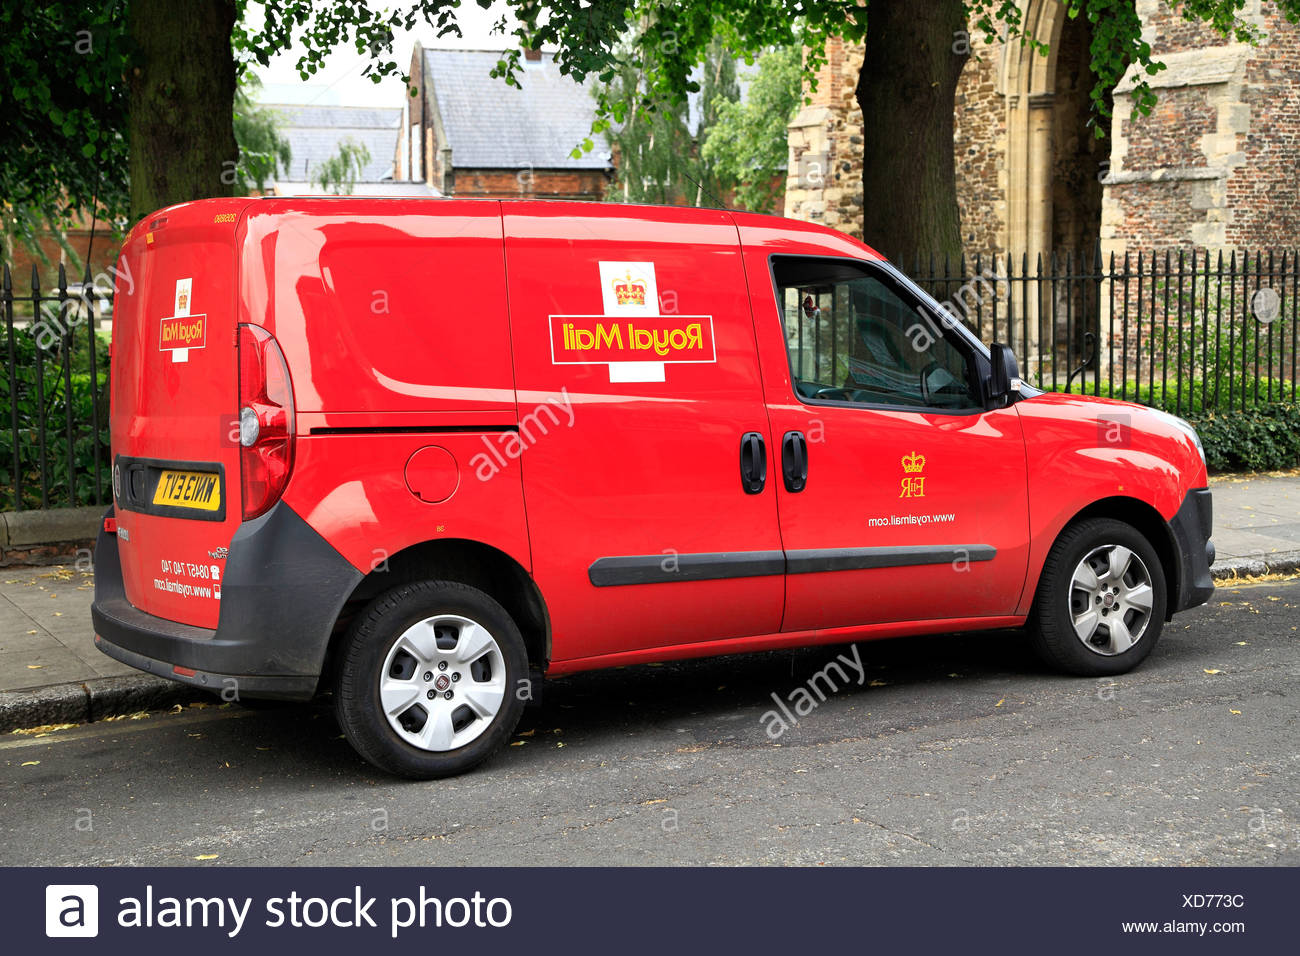 Royal Mail van, véhicule, England, UK, véhicules cars transports Photo Stock